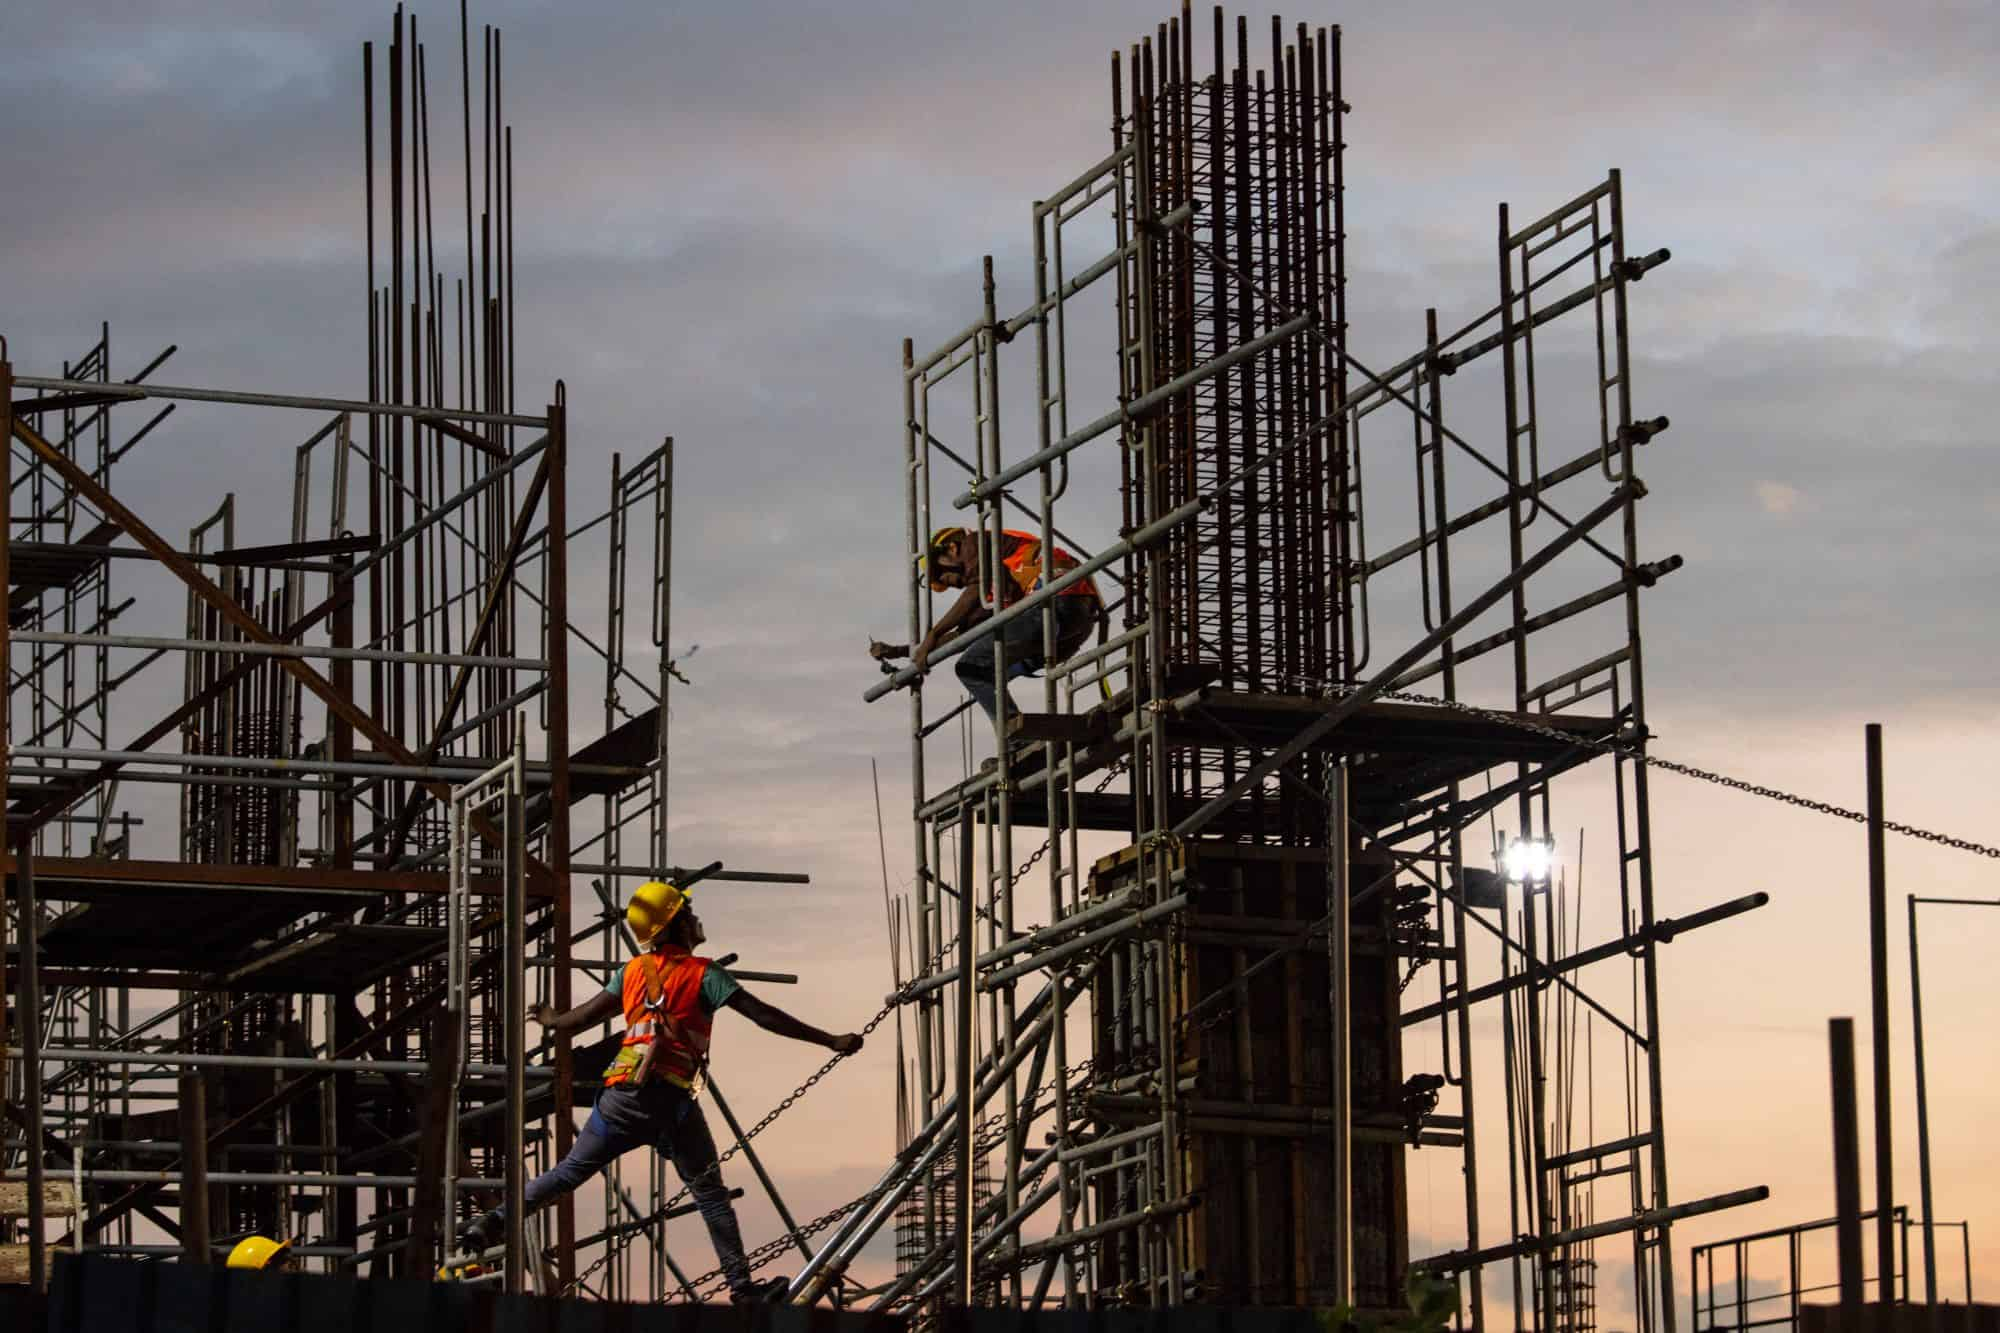 Construction workers in Sri Lanka head home after helping build a large China-backed shopping complex, in 2018.